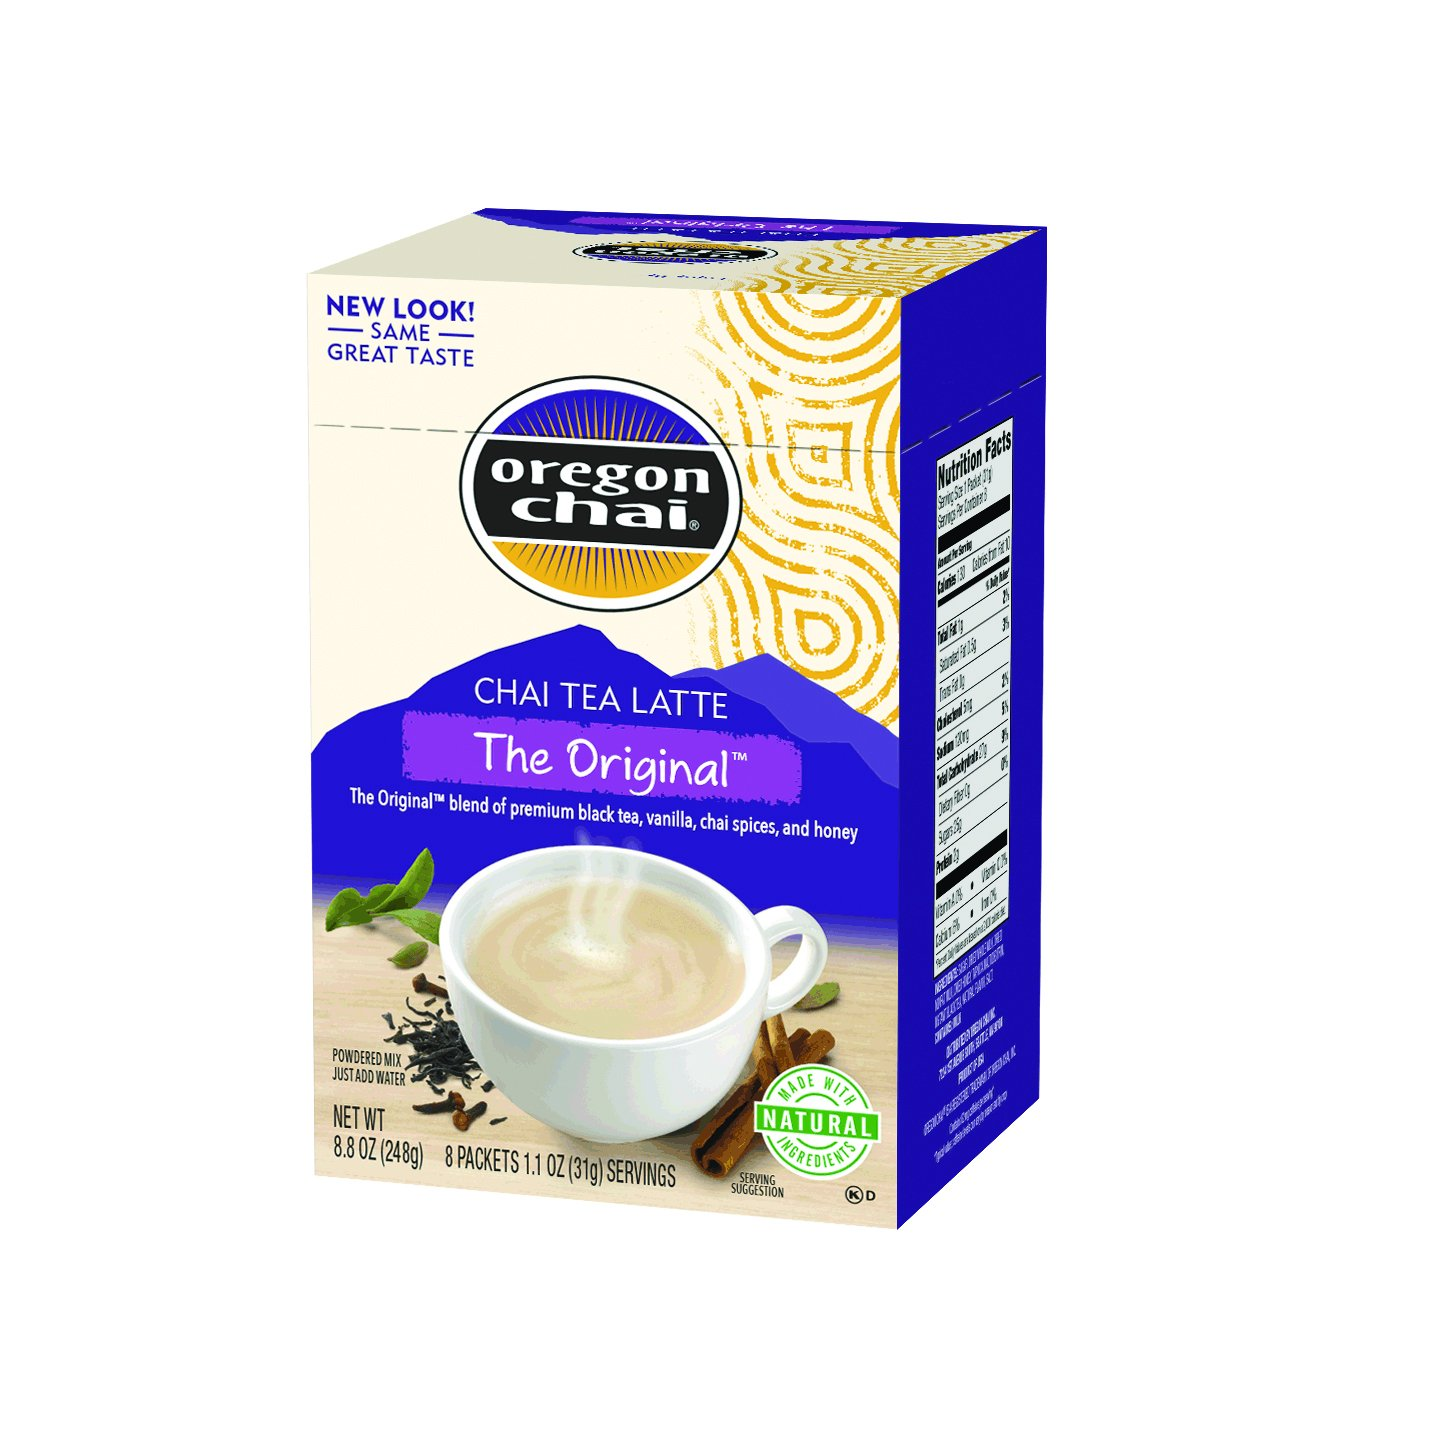 Oregon Chai Original Chai Tea Latte Powdered Mix, 8 Count Envelopes per Box, 1.1 oz each (31g) (Pack of 6), Powdered Spiced Black Tea Latte Mix For Home Use, Café, Food Service